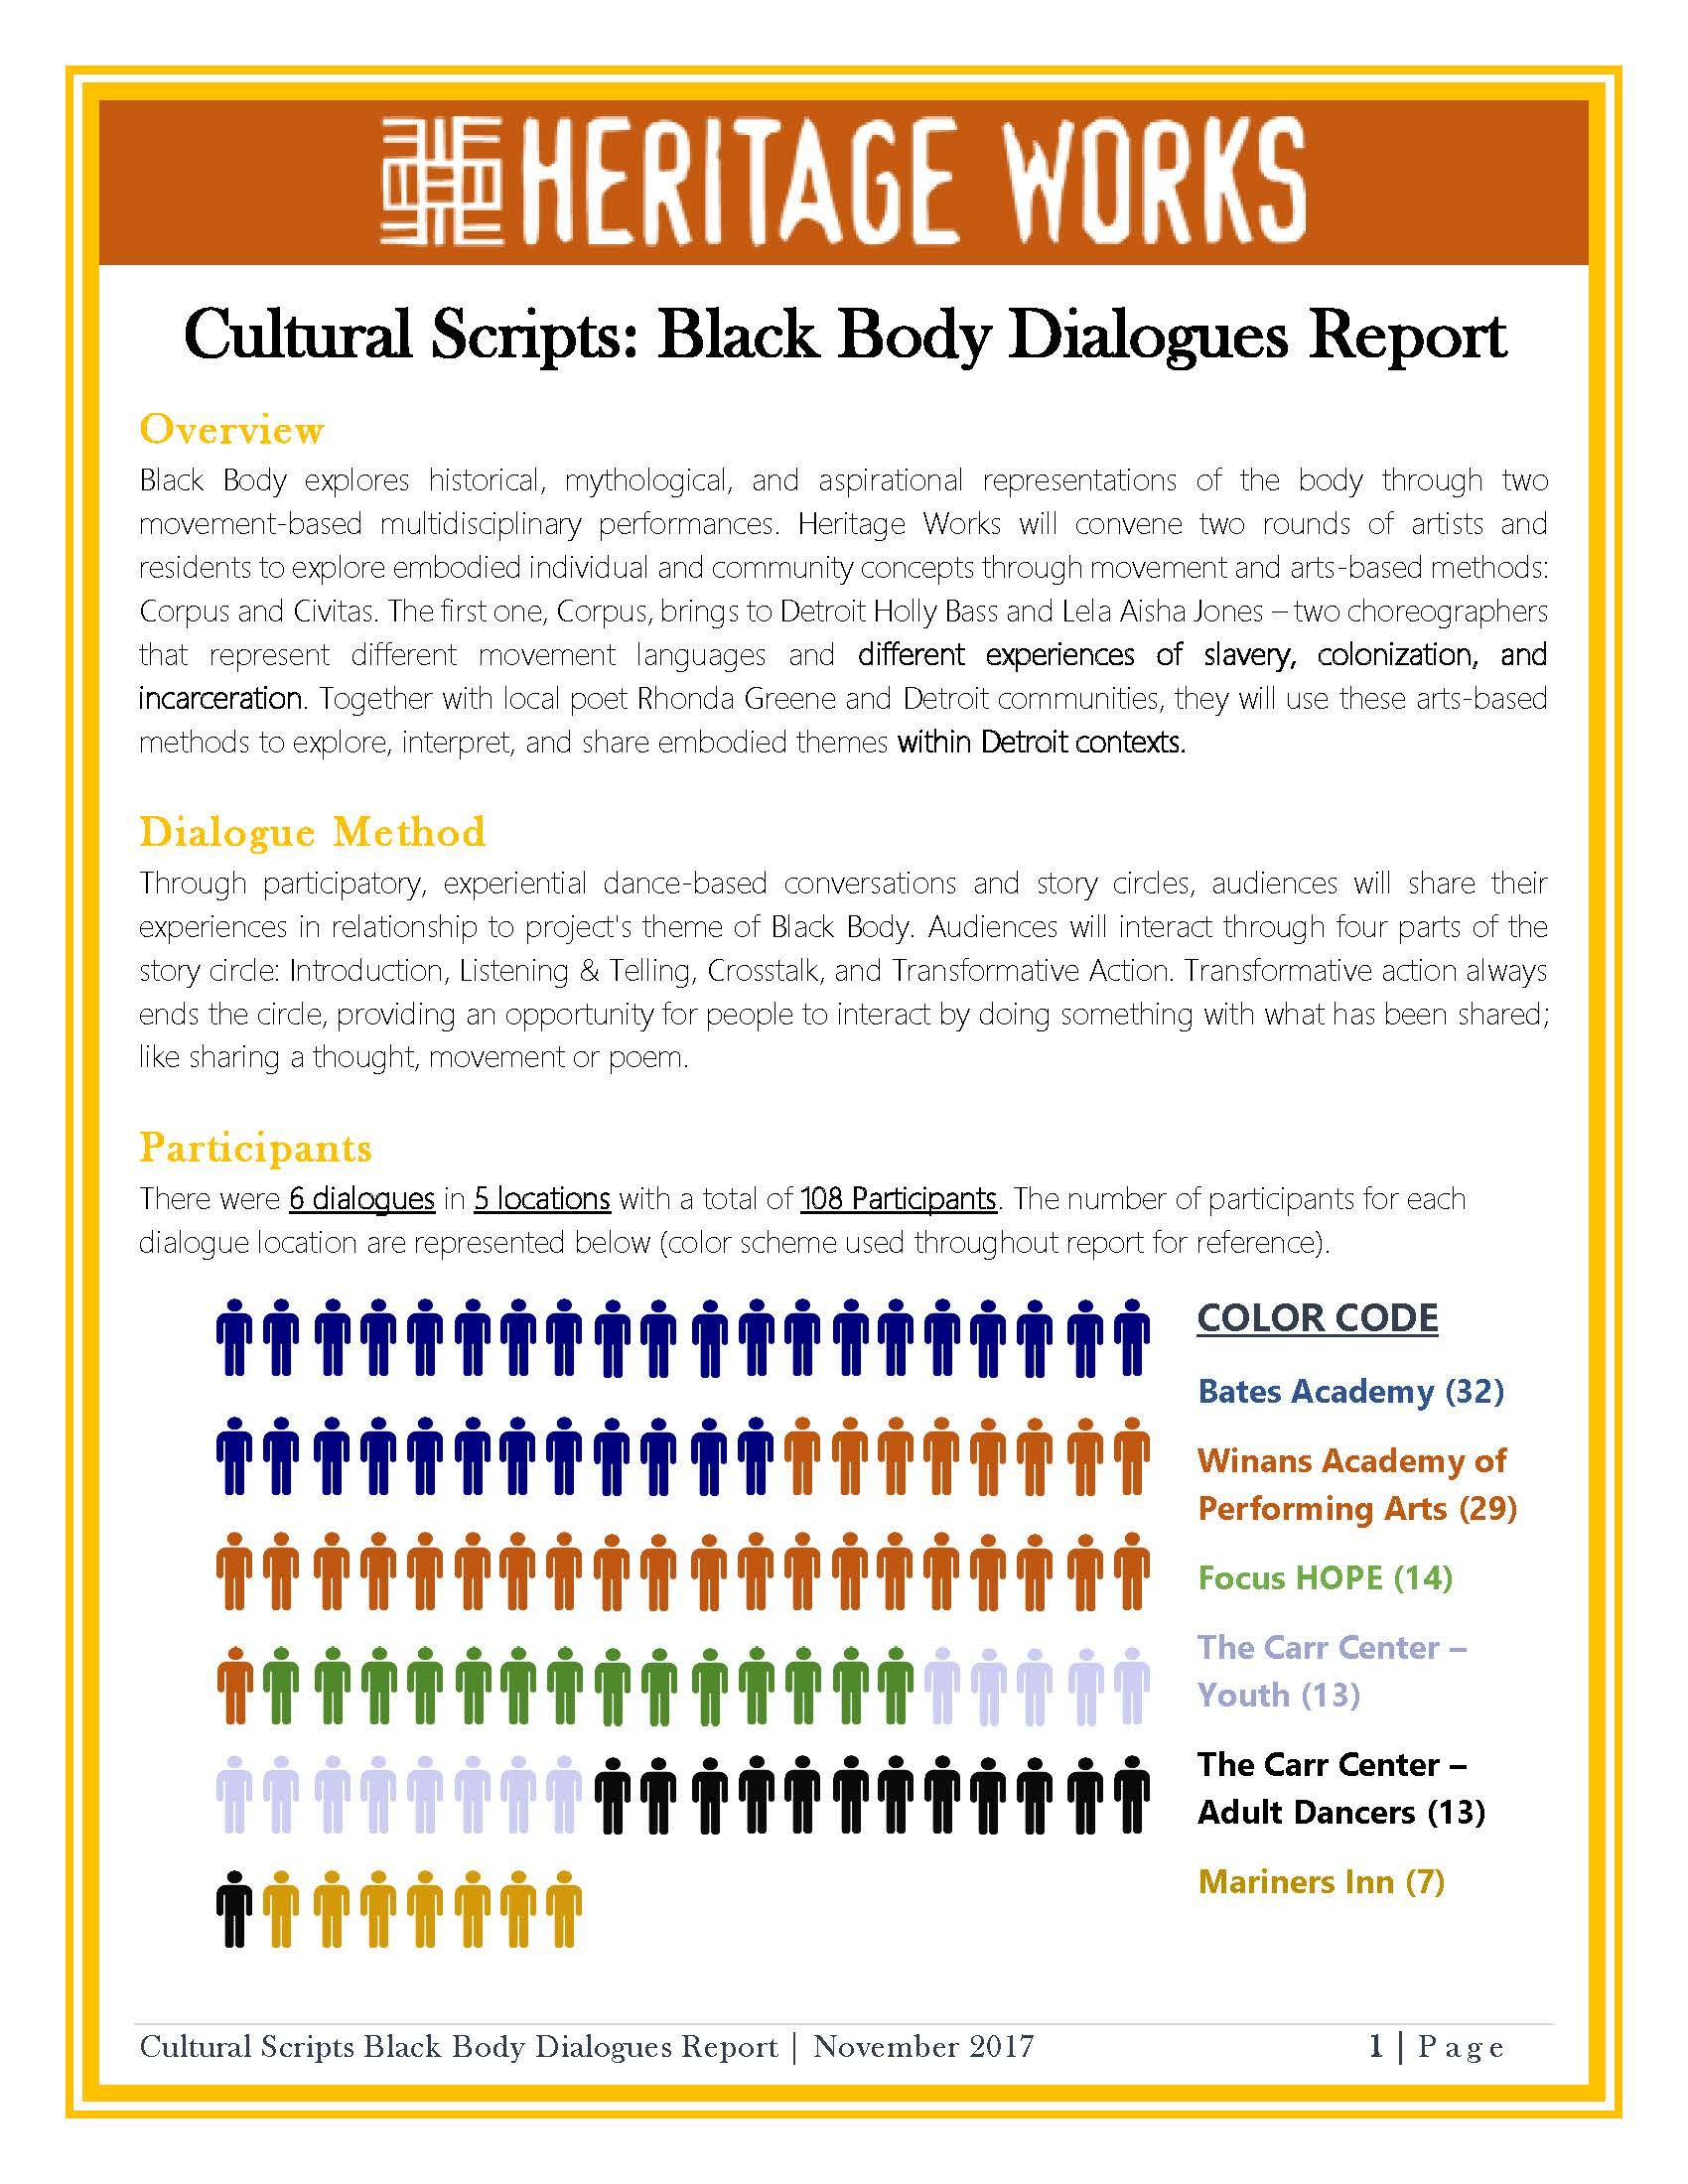 Black Body Discovery Dialogues